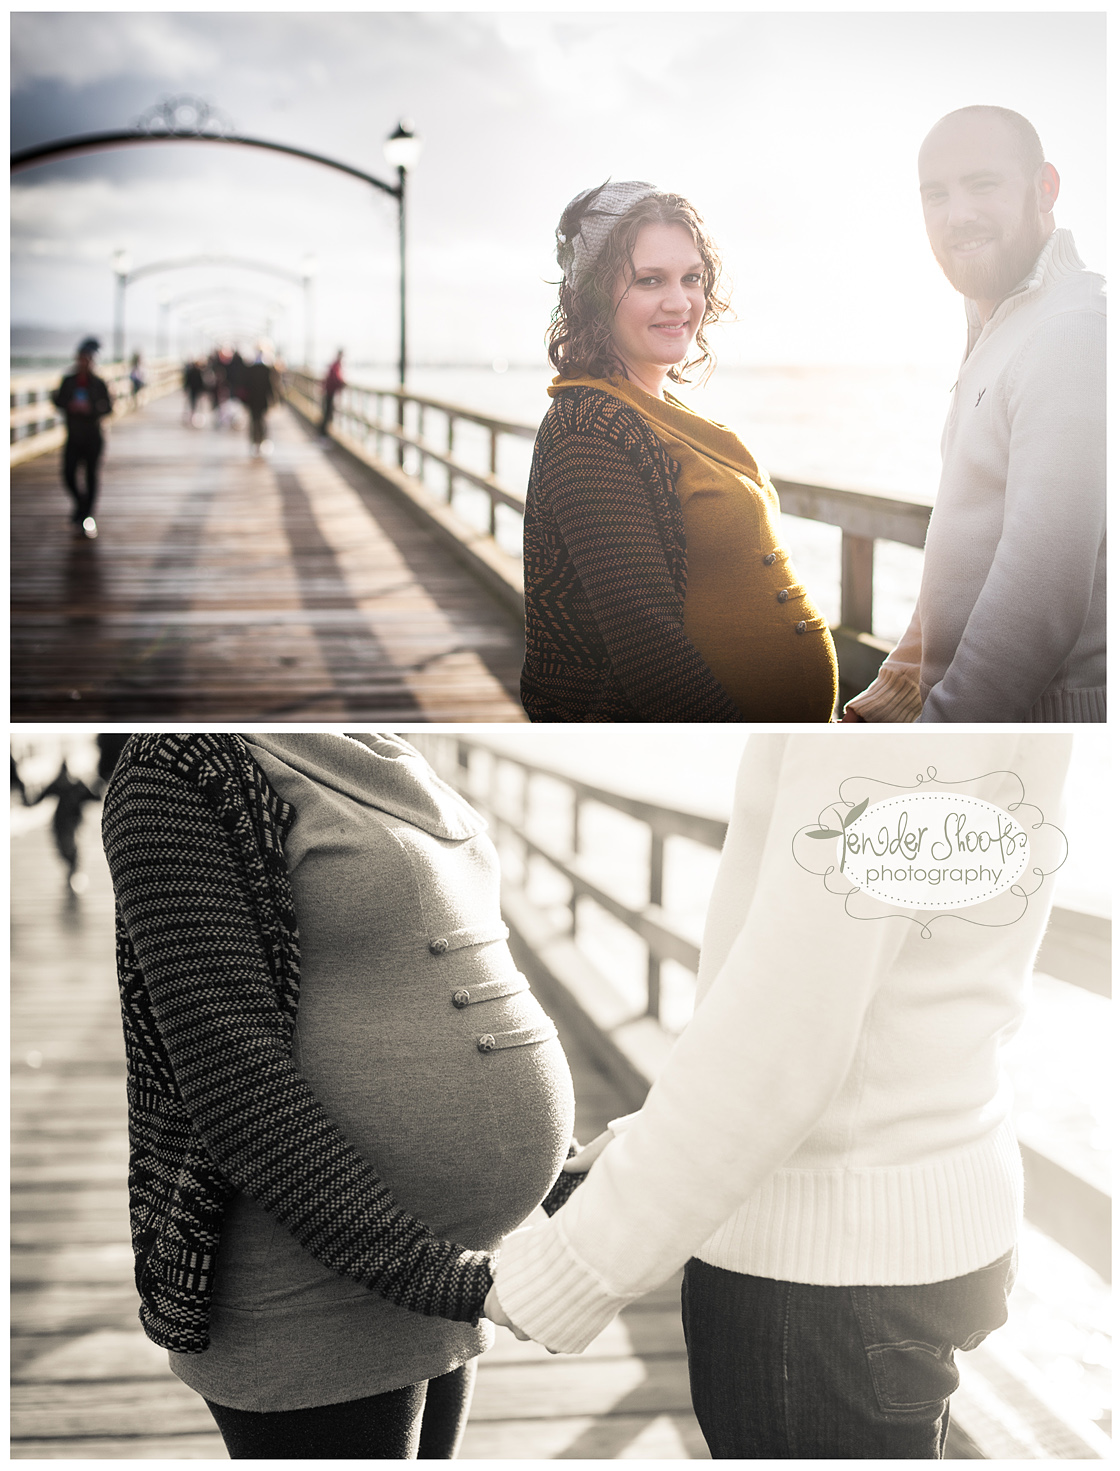 Tender Shoots Maternity Photography